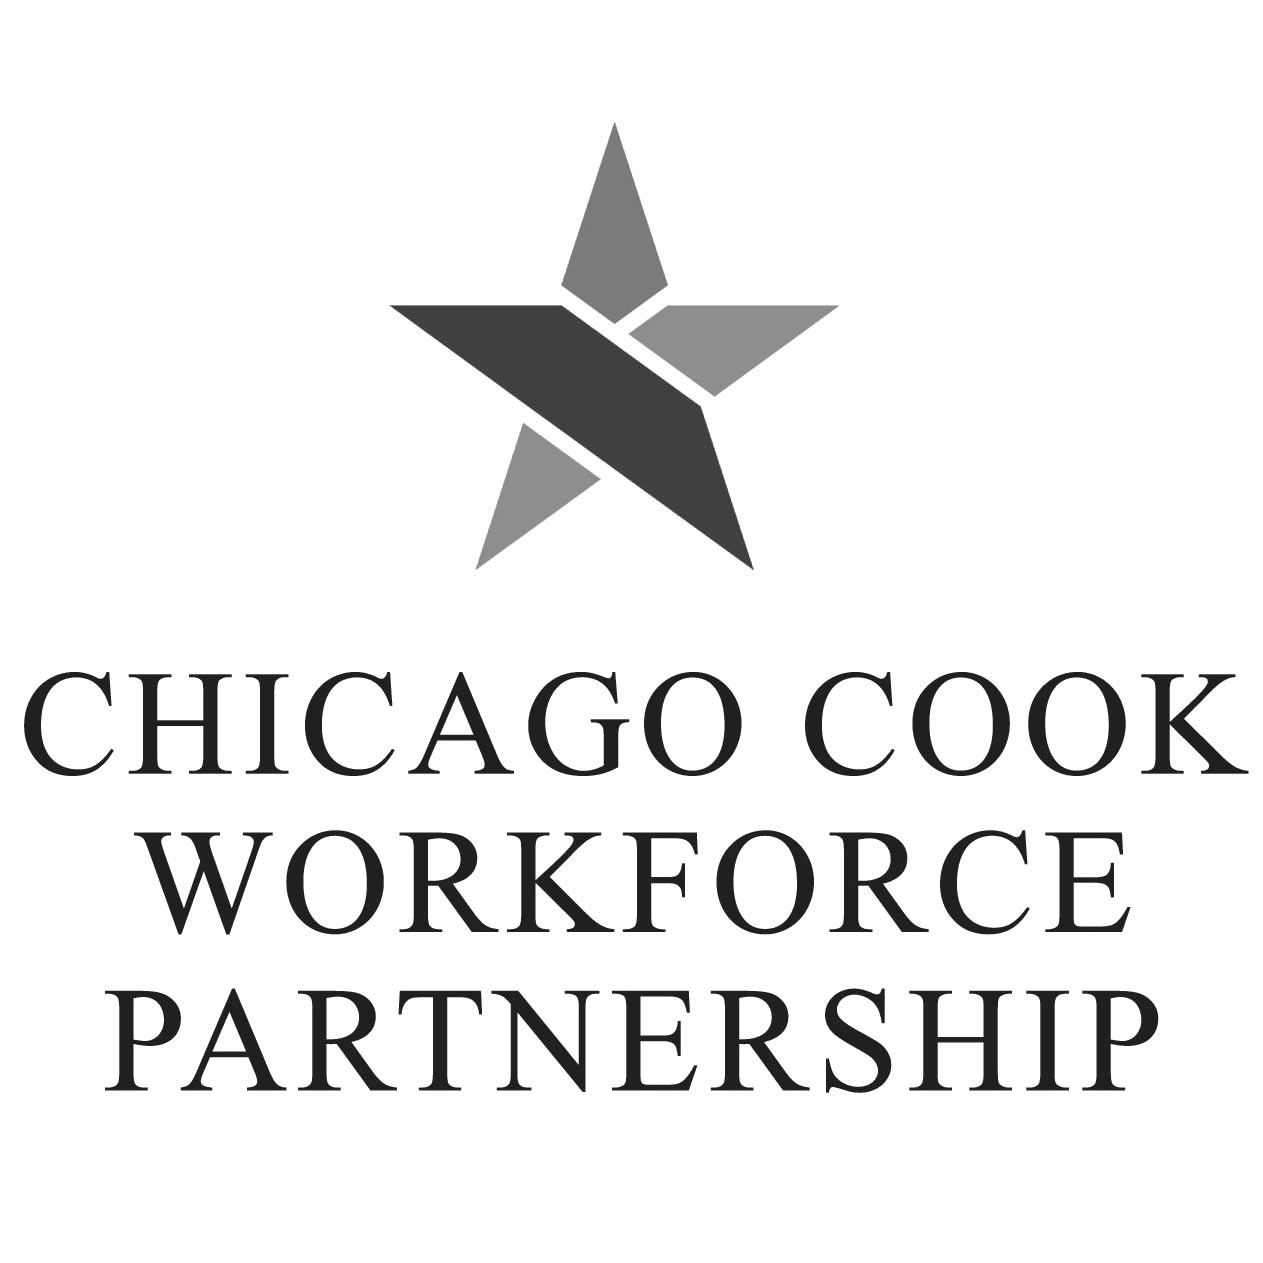 chicago-cook-workforce-partnership.jpg